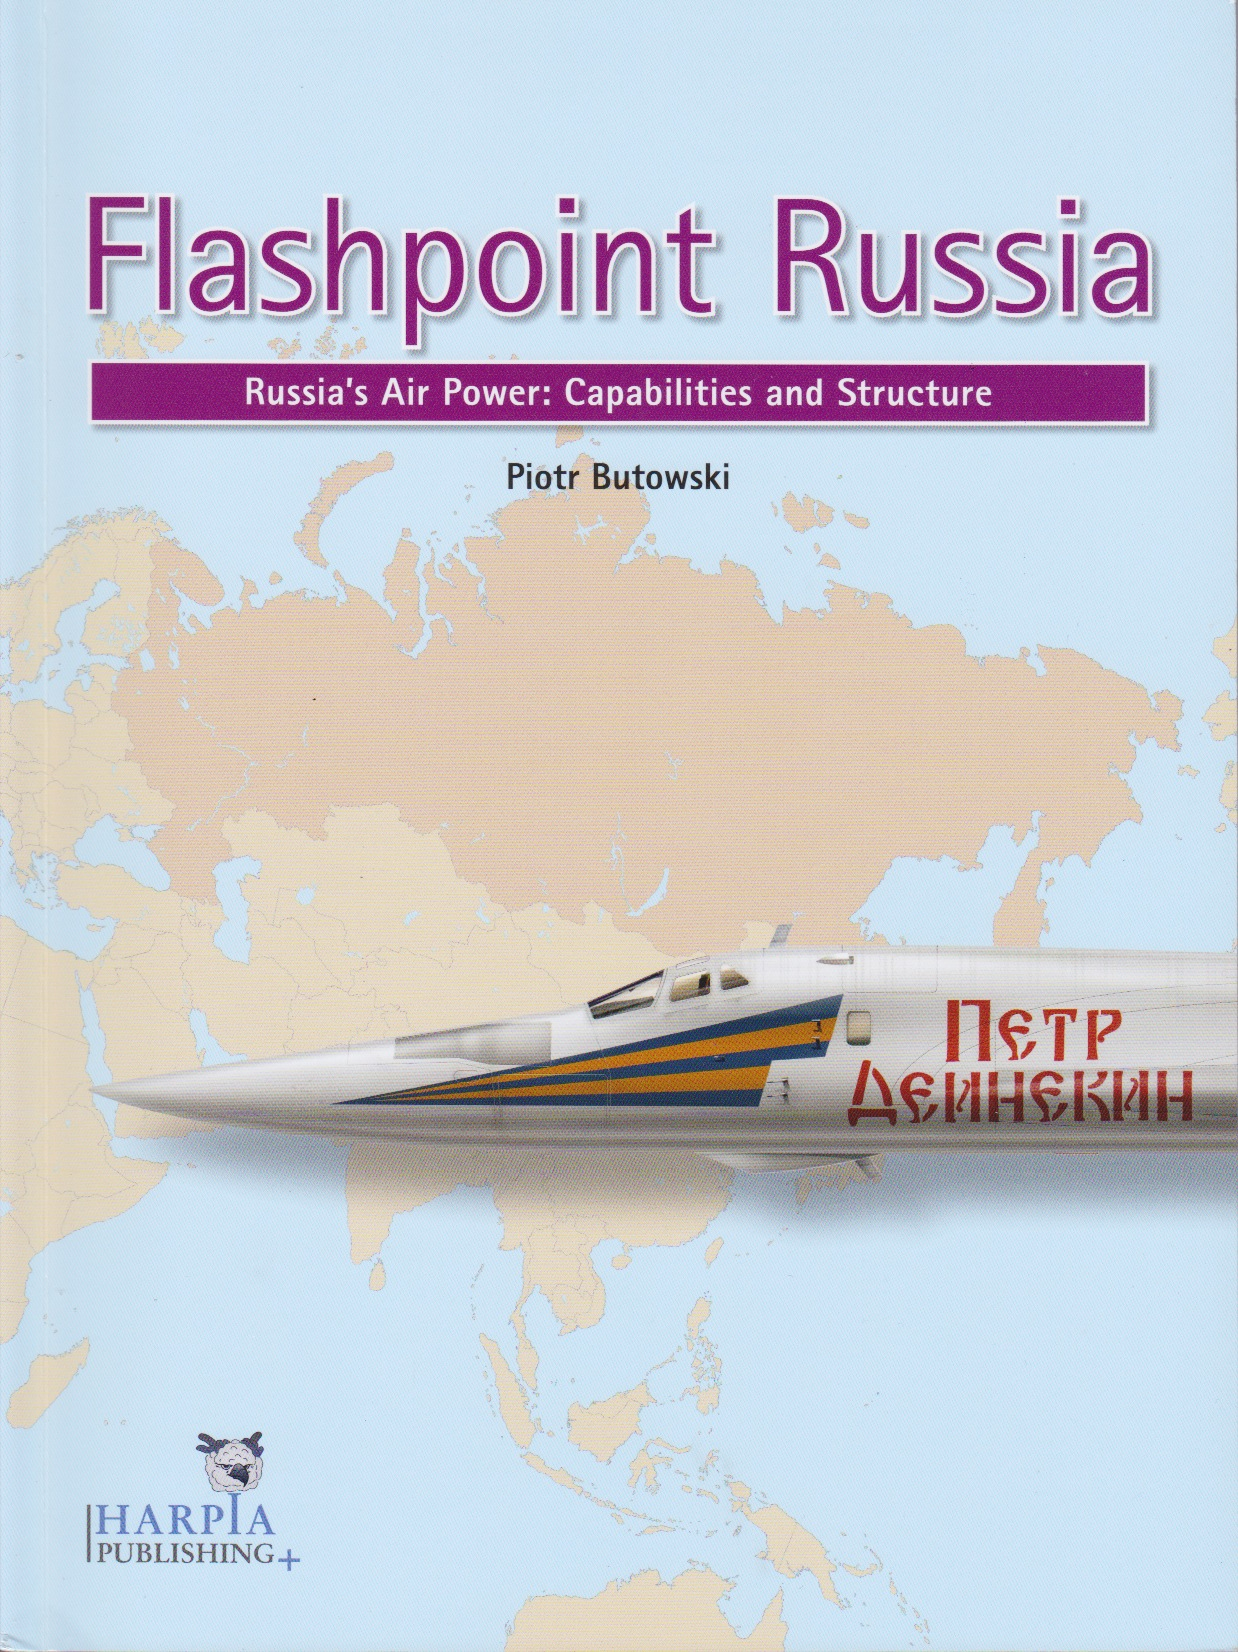 Flashpoint Russia – Russia's Air Power: Capabilities and Structure